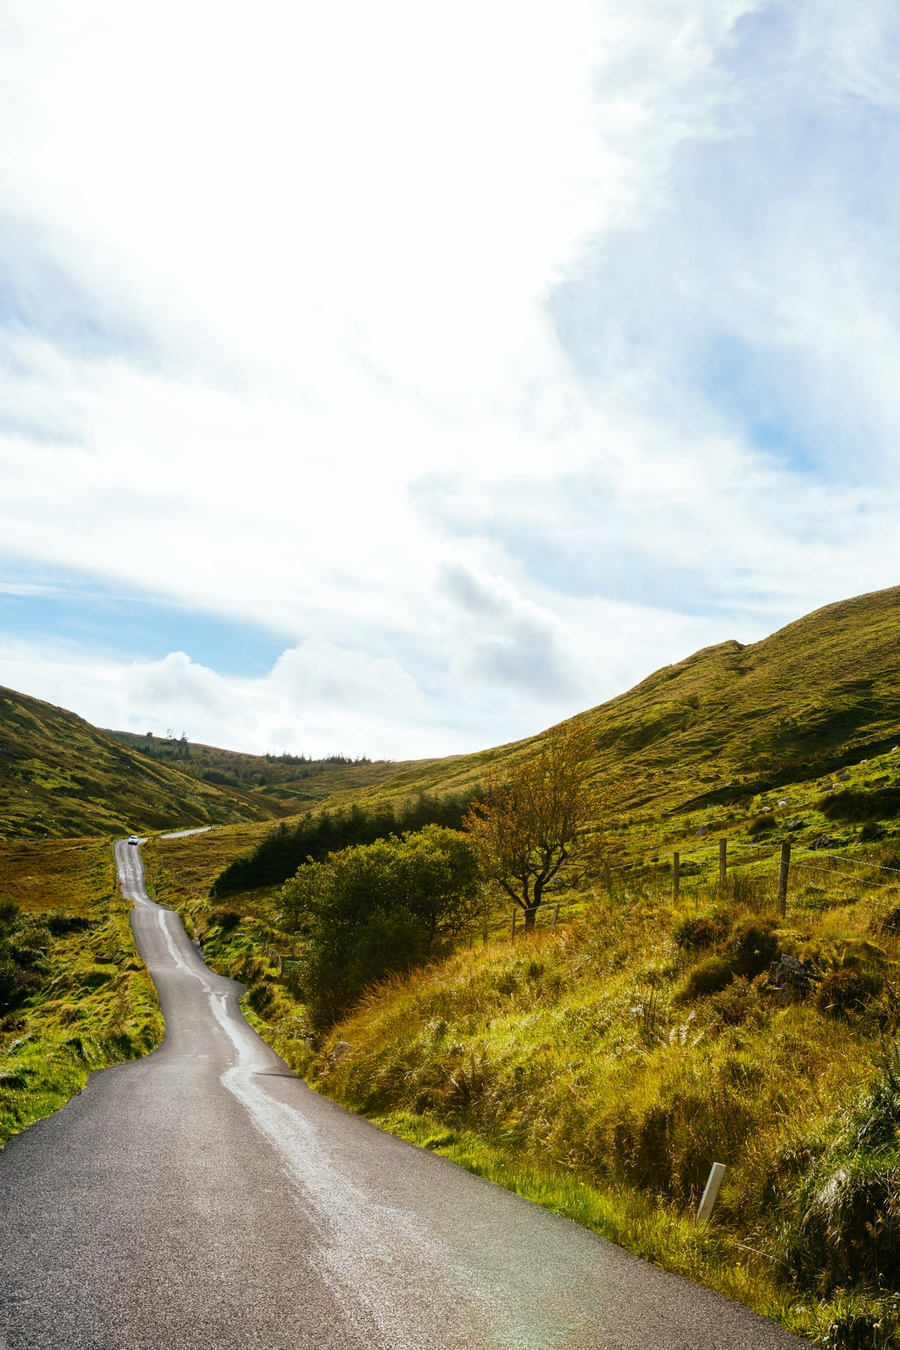 Route sinueuse d'Irlande